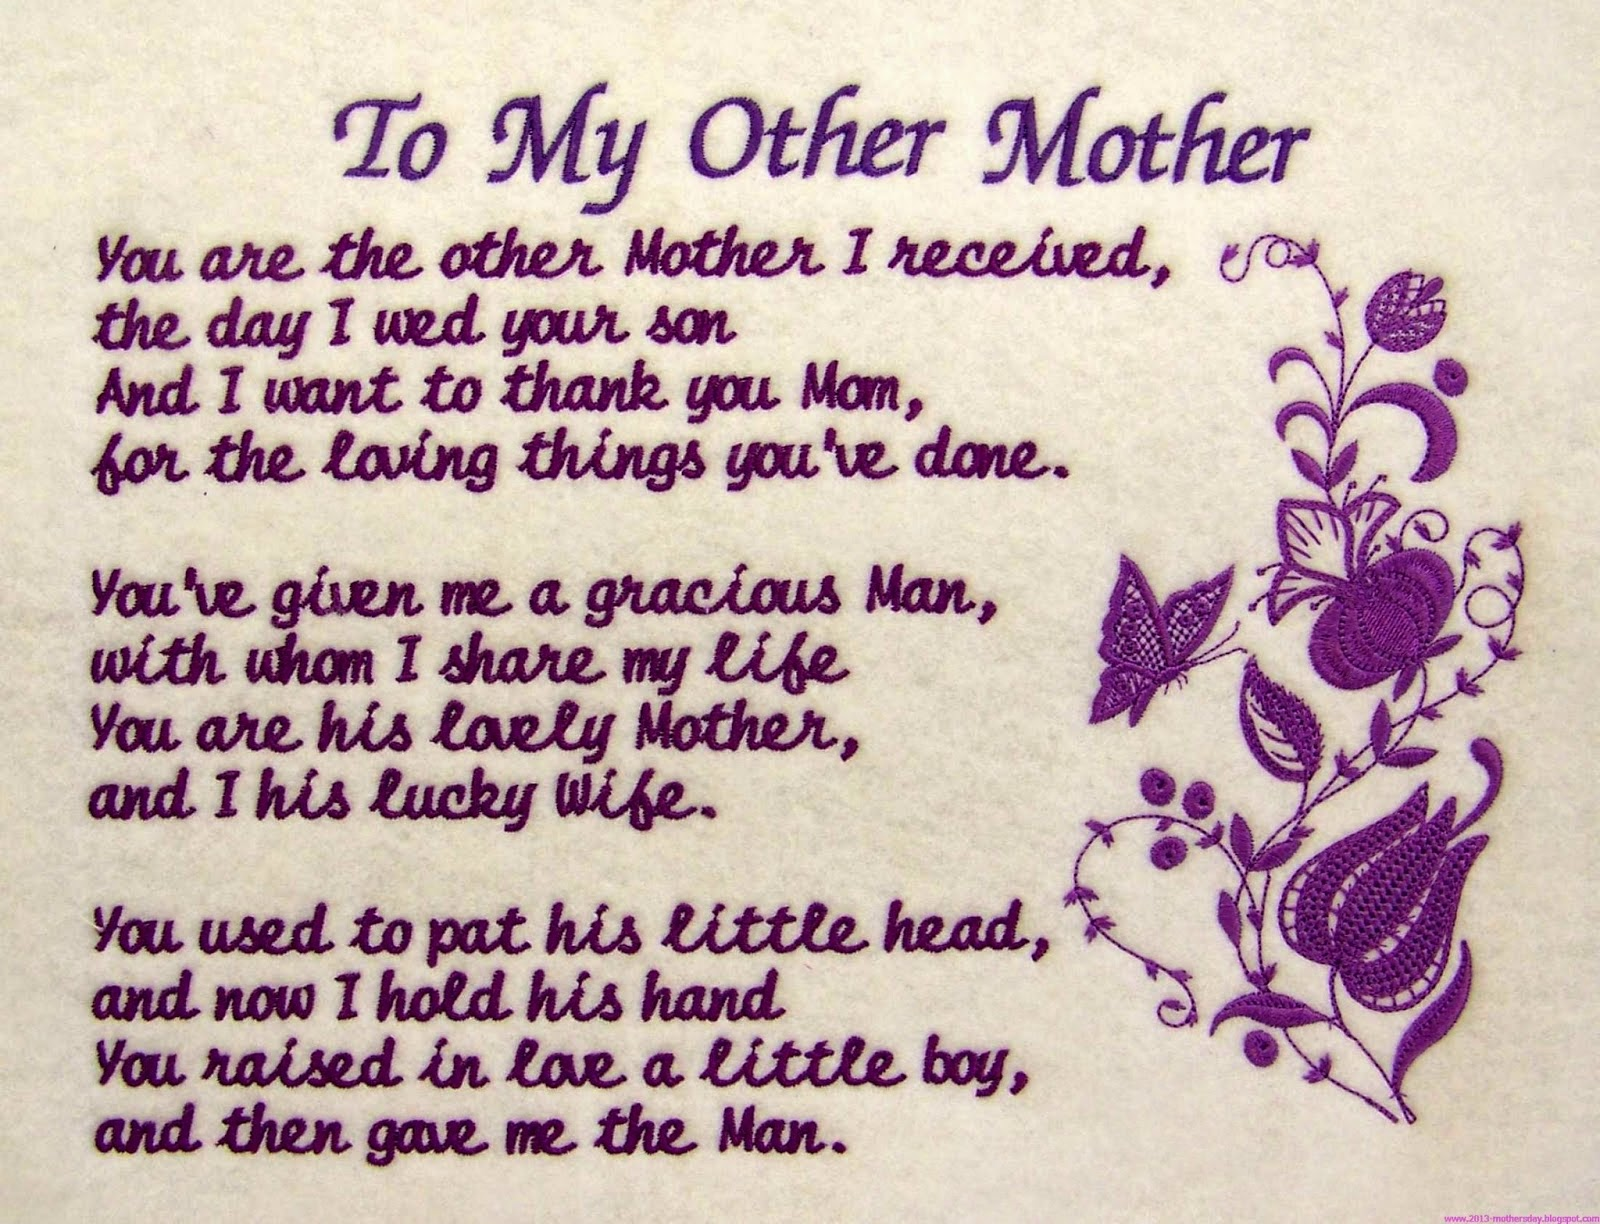 Mother's Day, part 1